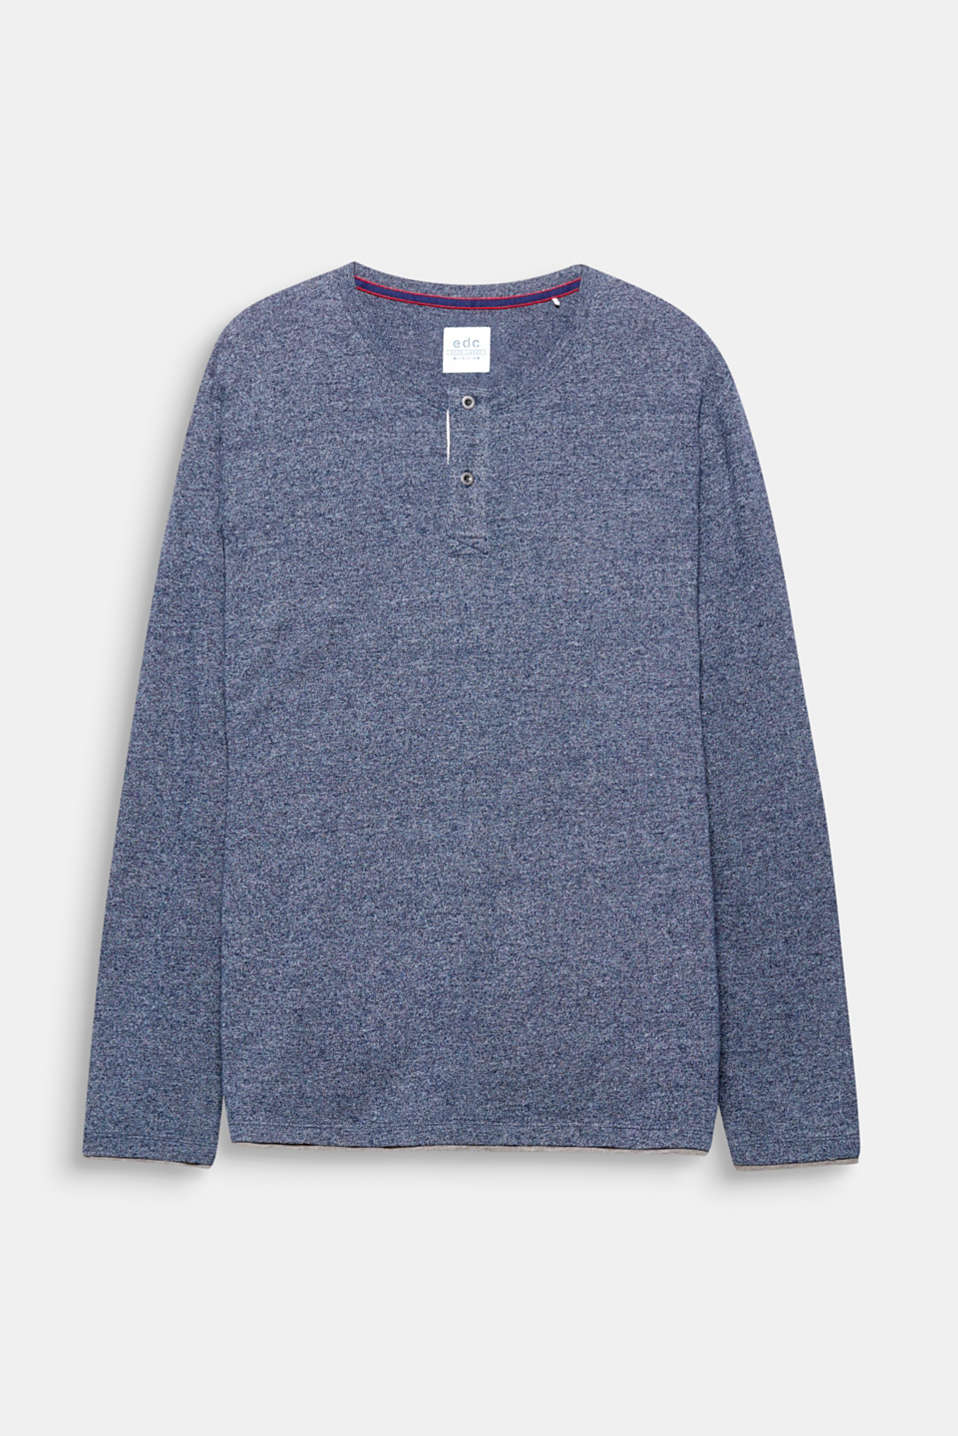 Thanks to the carbonised piqué, this long sleeve top with a Henley neckline is super soft to the touch.